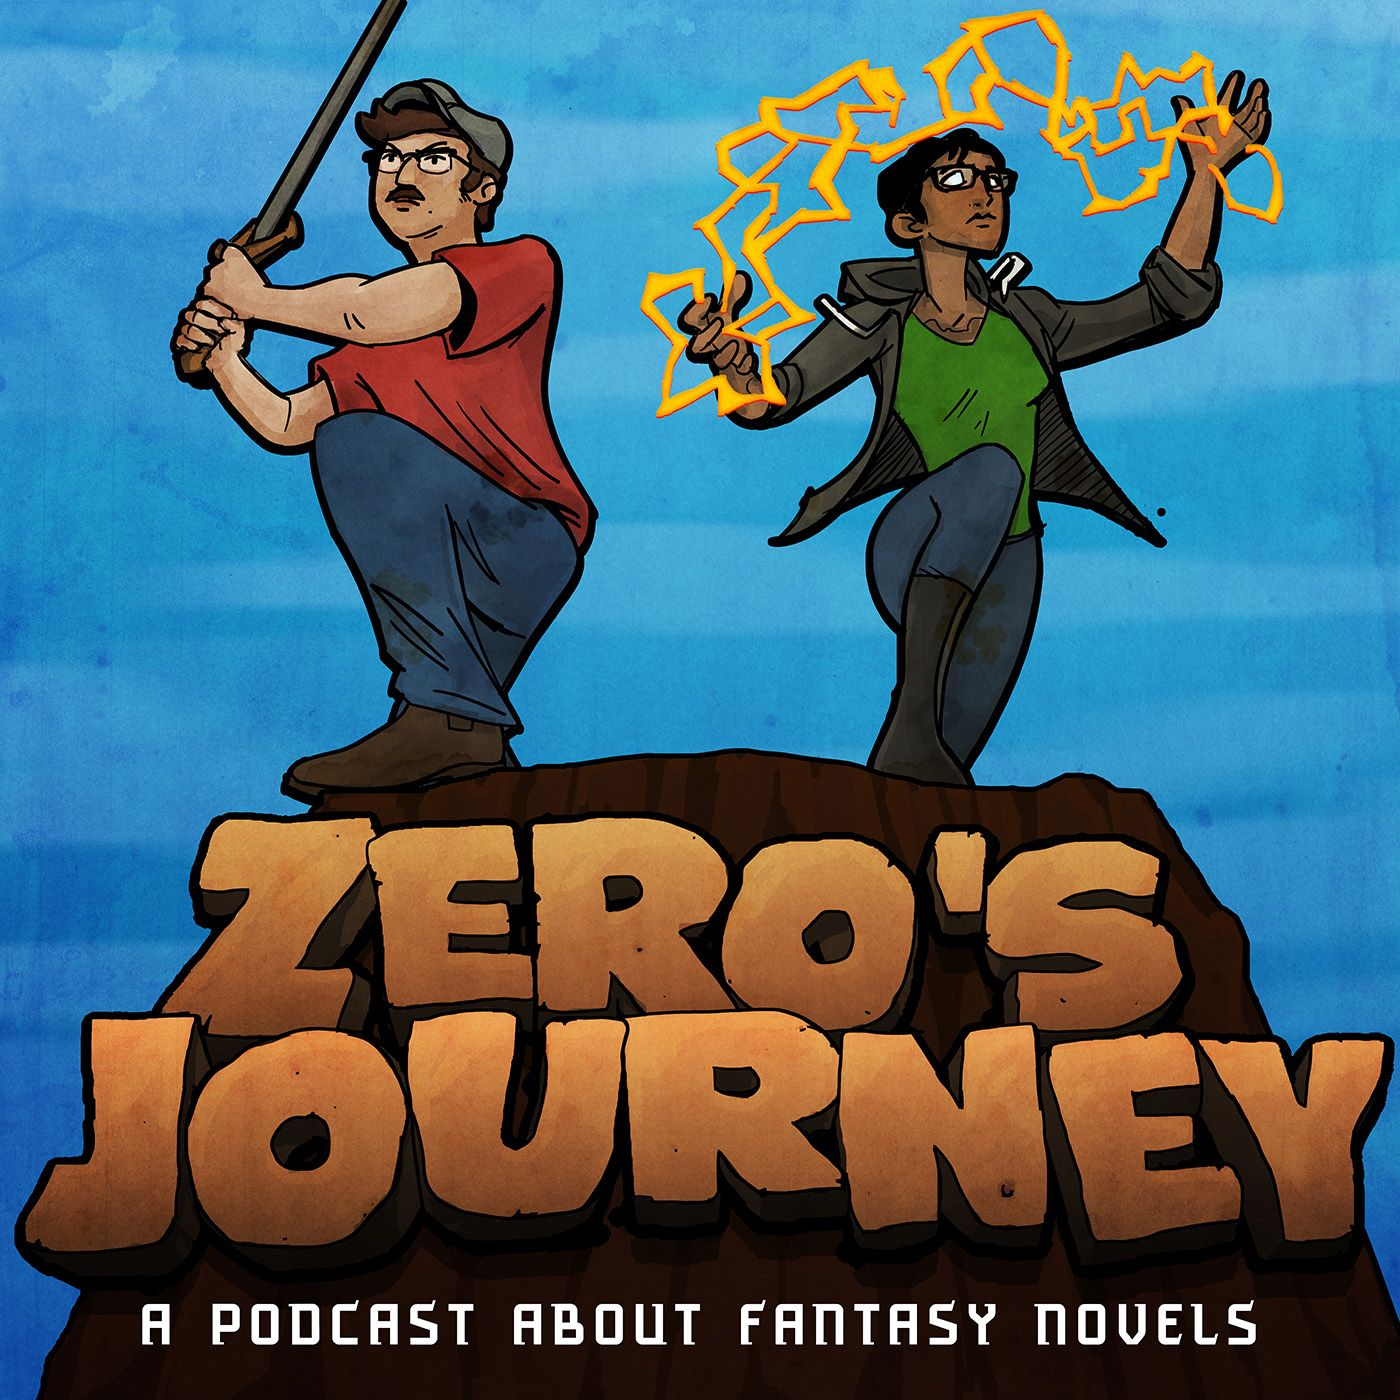 Zero's Journey Episode 02